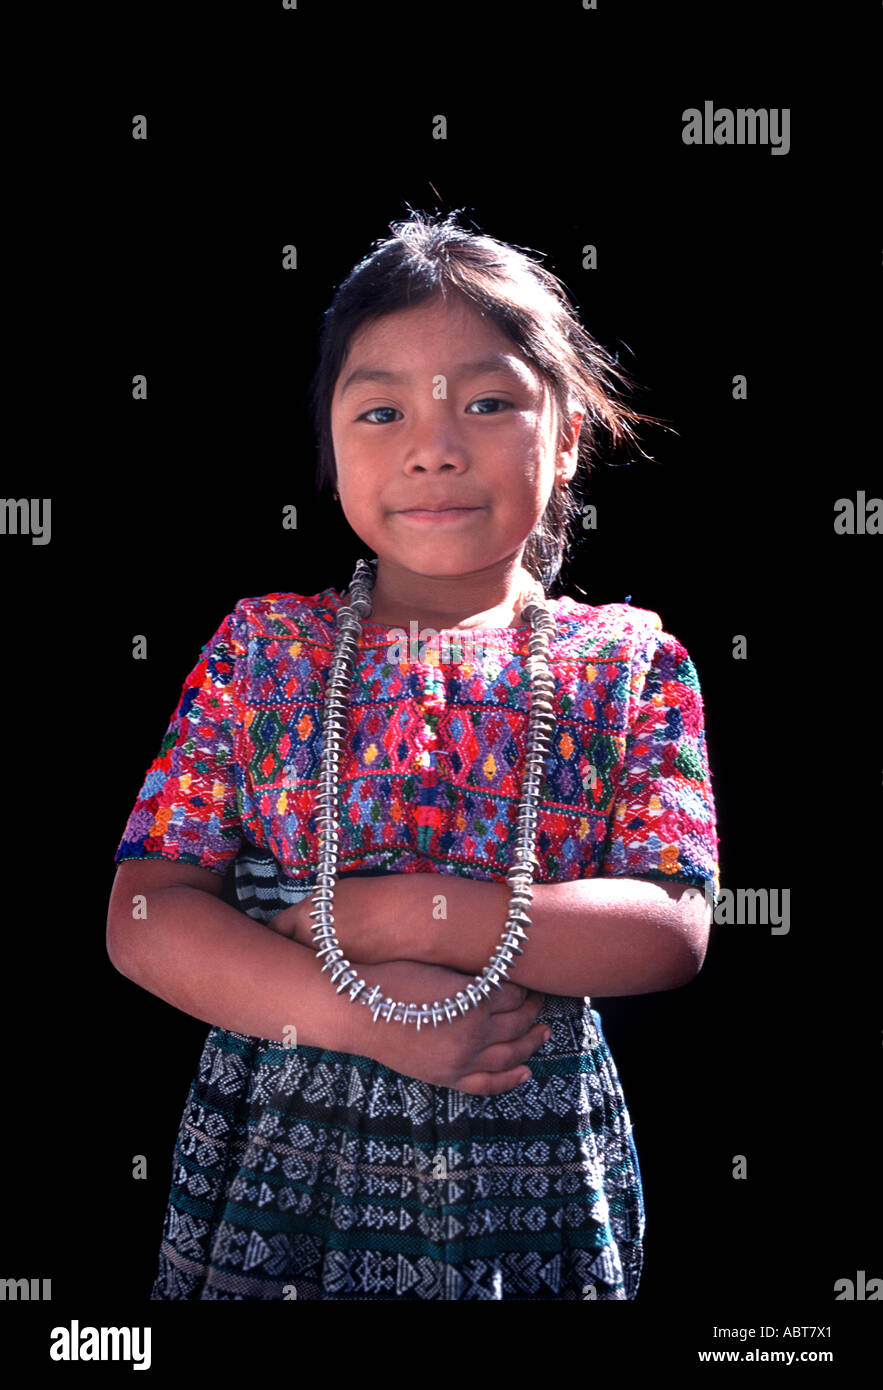 Portrait of a young Maya girl in traditional stlye costume of her community San Pedro Sacatepequez Guatemala Central America - Stock Image